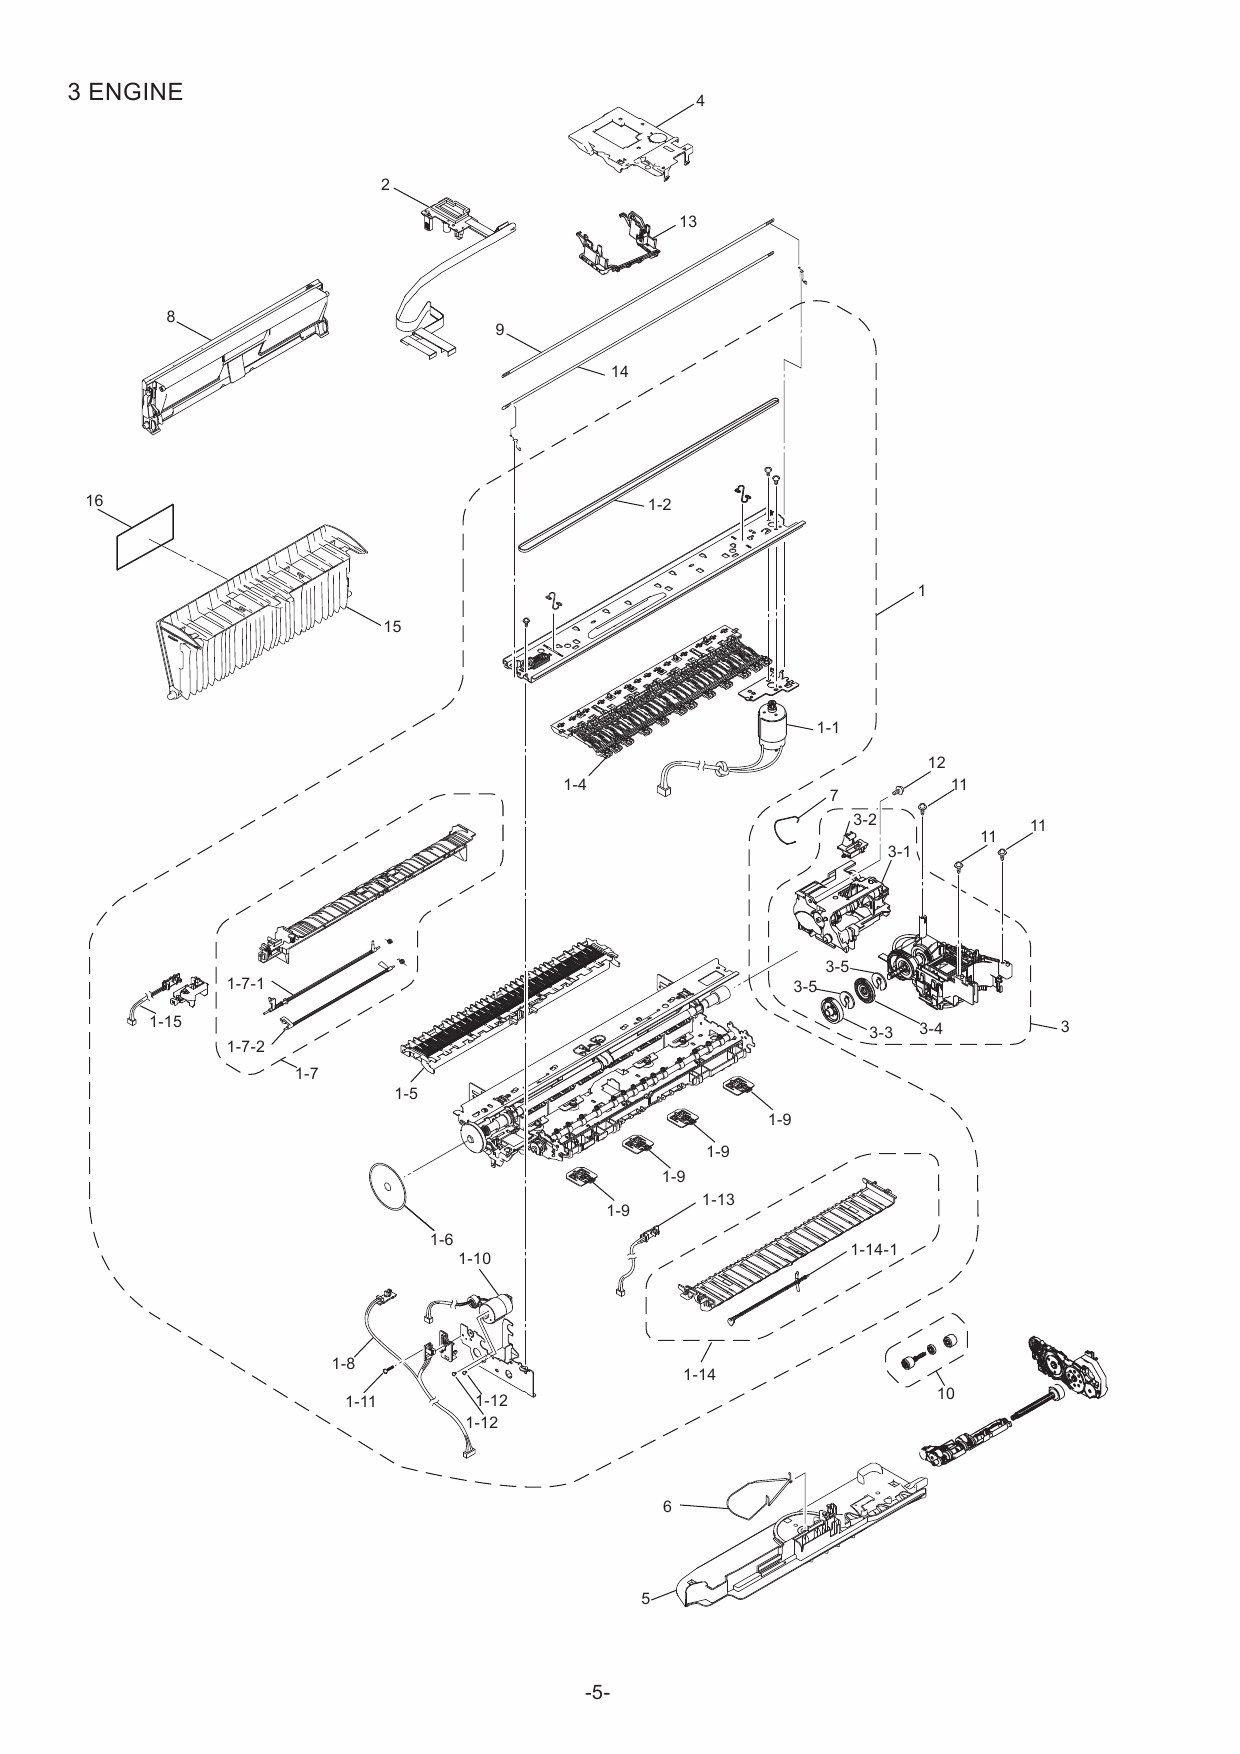 brother mfc 8950dw parts manual